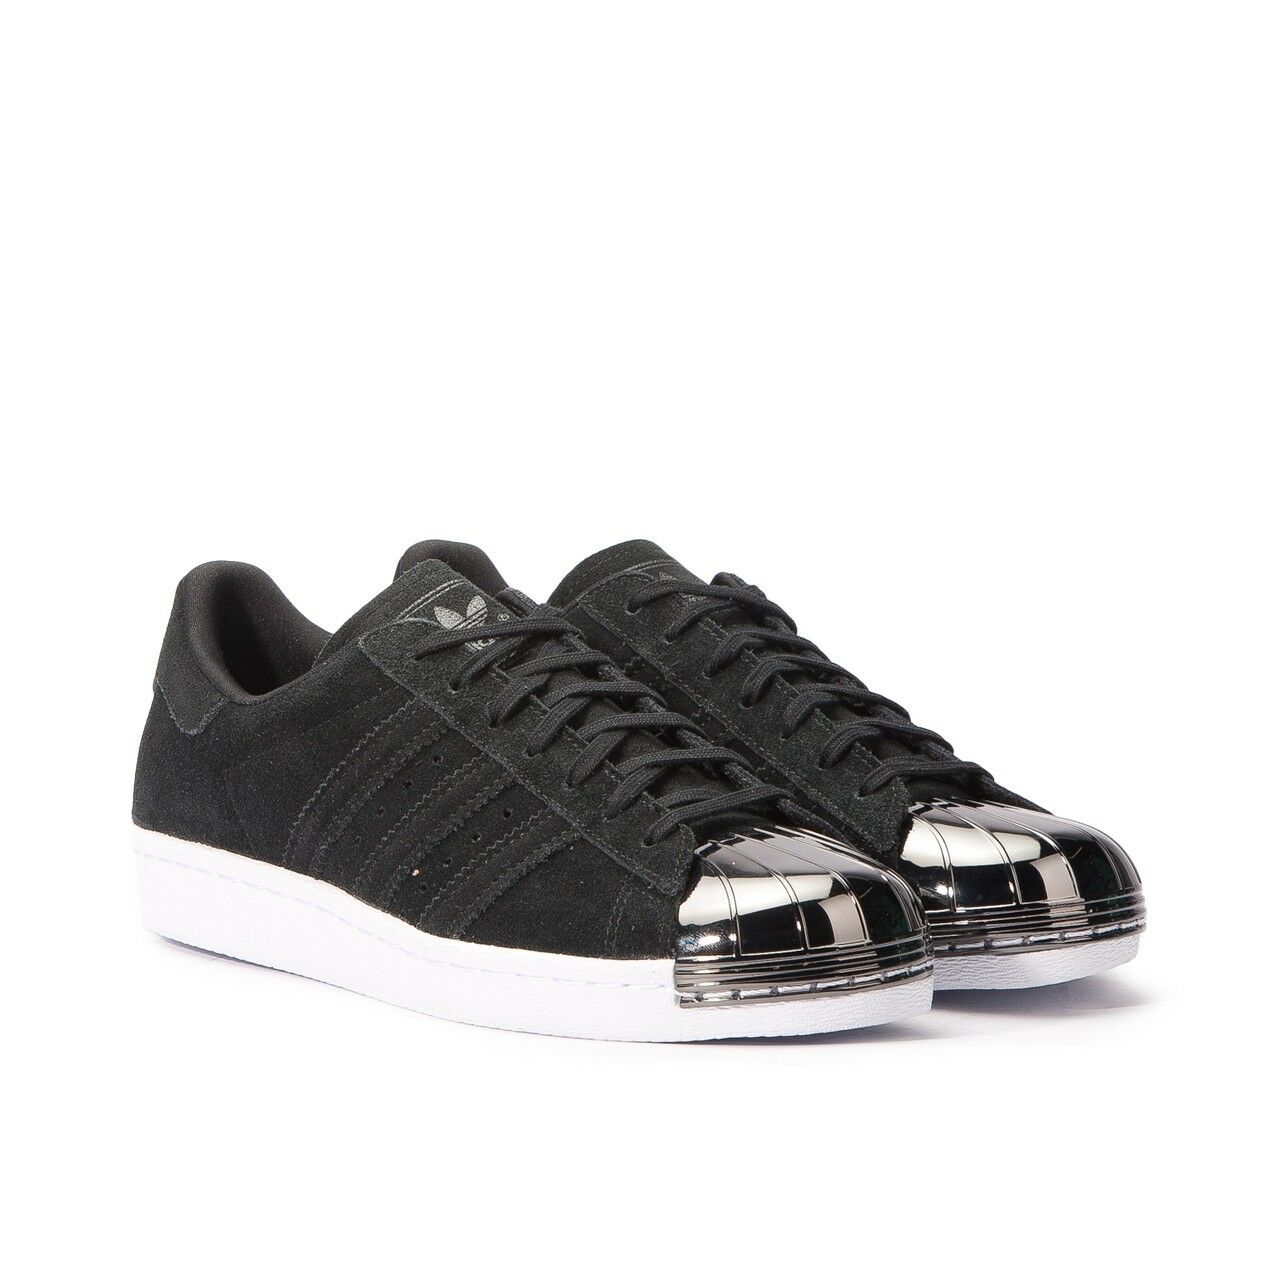 Adidas Superstar 80s Metal Toe sneakers Size 8